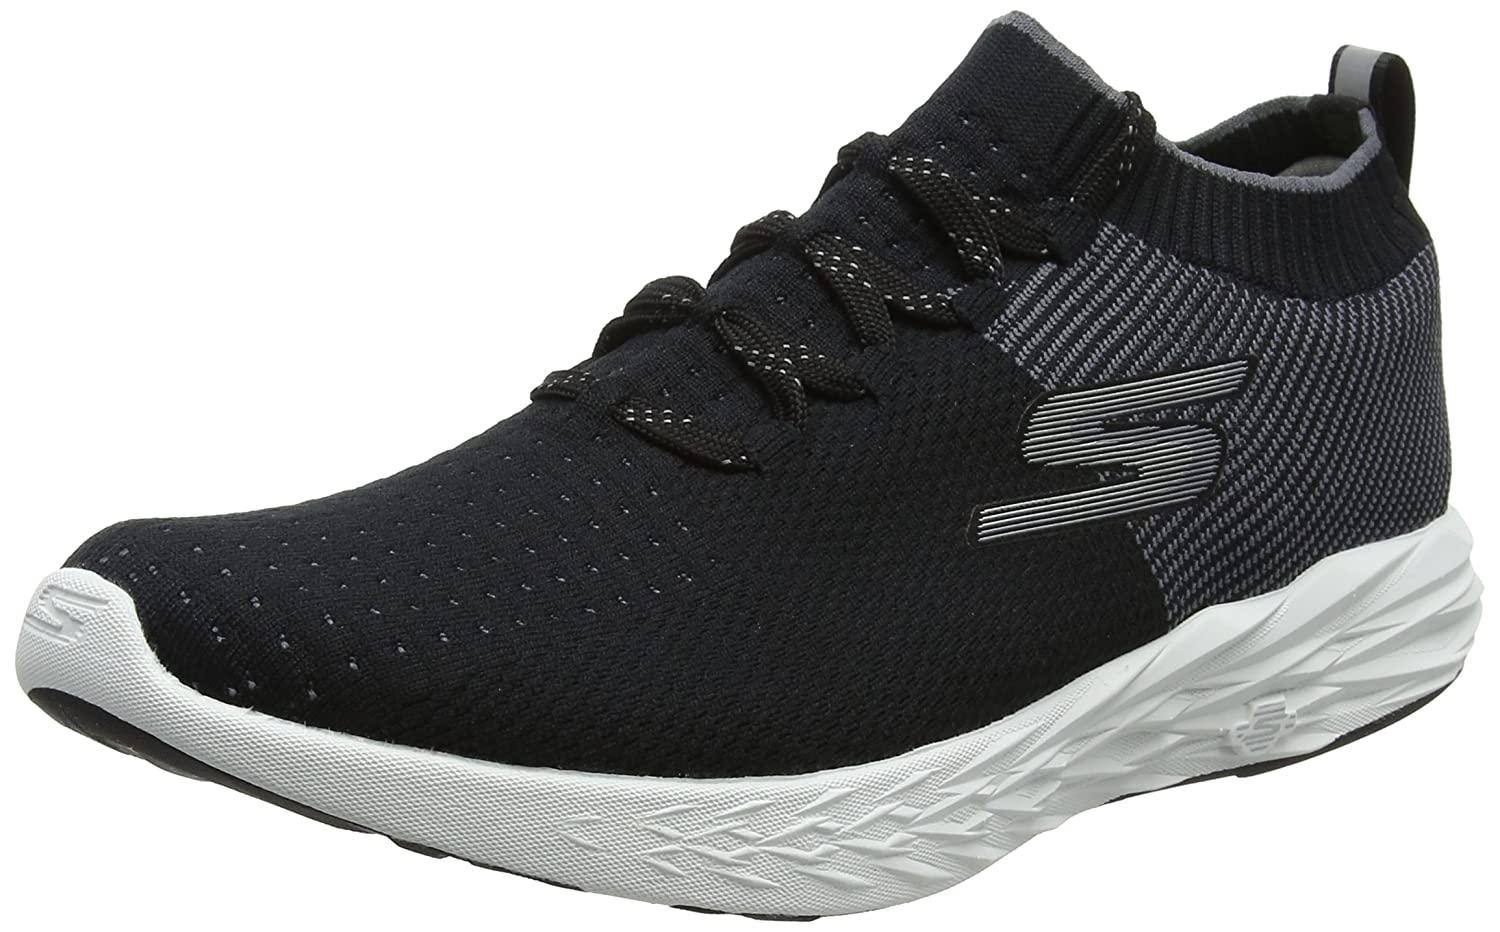 Skechers Women's GOrun 6 Shoe 2018